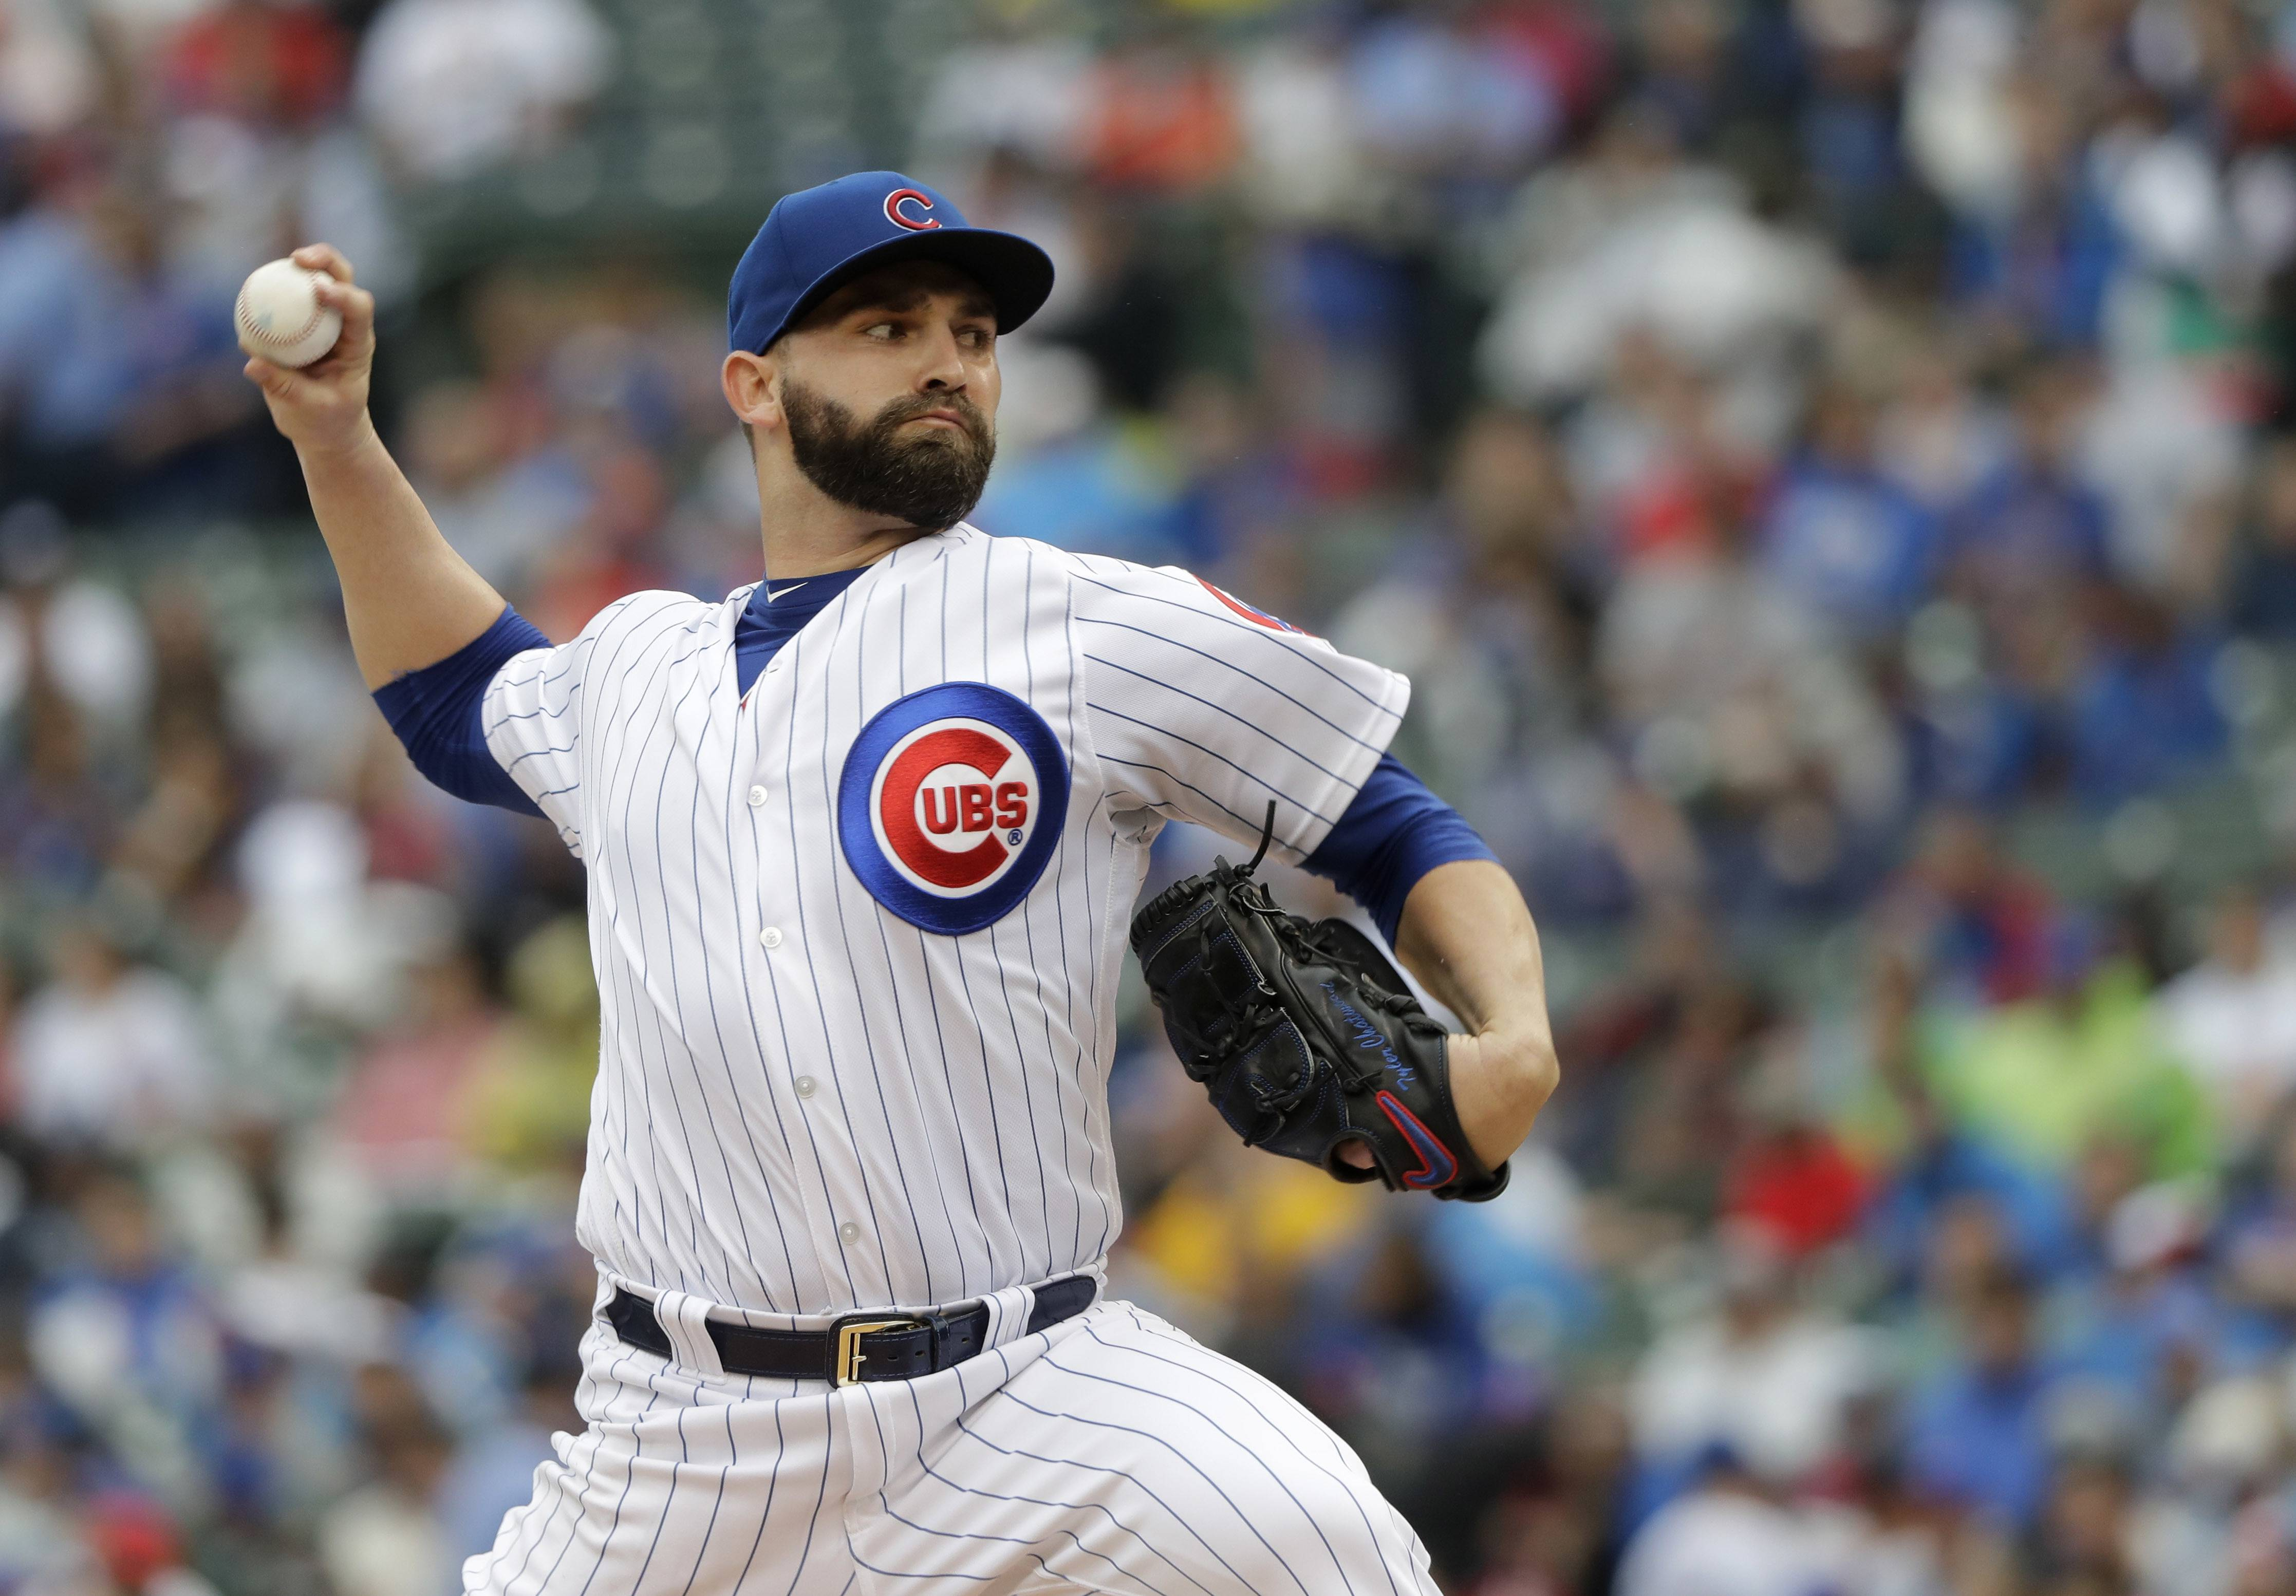 Chicago Cubs starting pitcher Tyler Chatwood delivers during the first inning against the St. Louis Cardinals Saturday in Chicago.